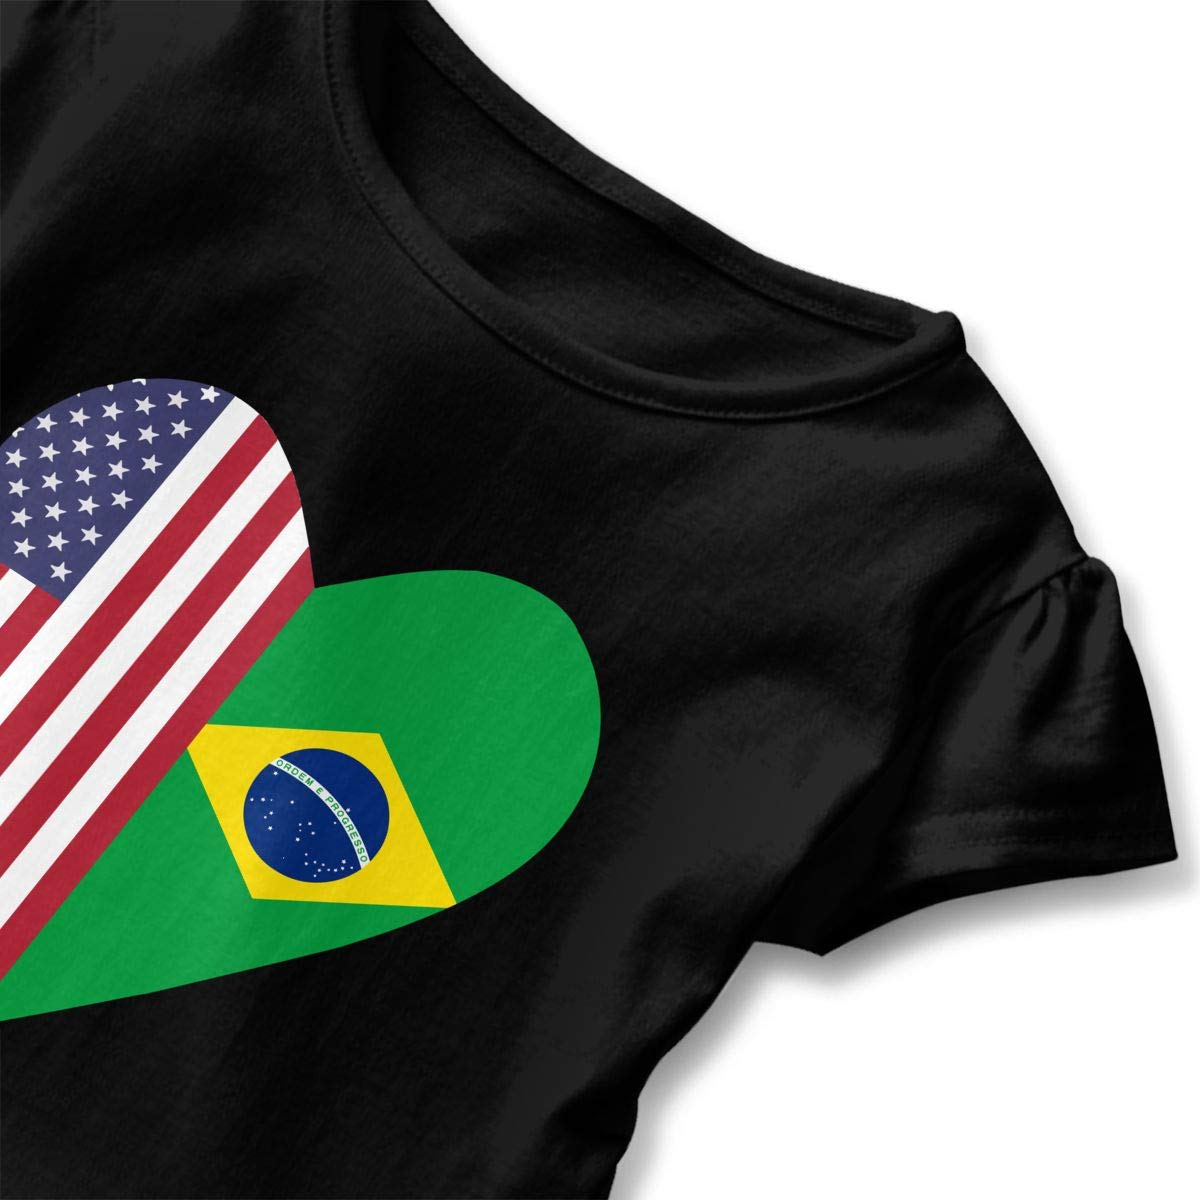 Half Brazil Flag Half USA Flag Love Heart Kids Children Short-Sleeved T-Shirt Clothes